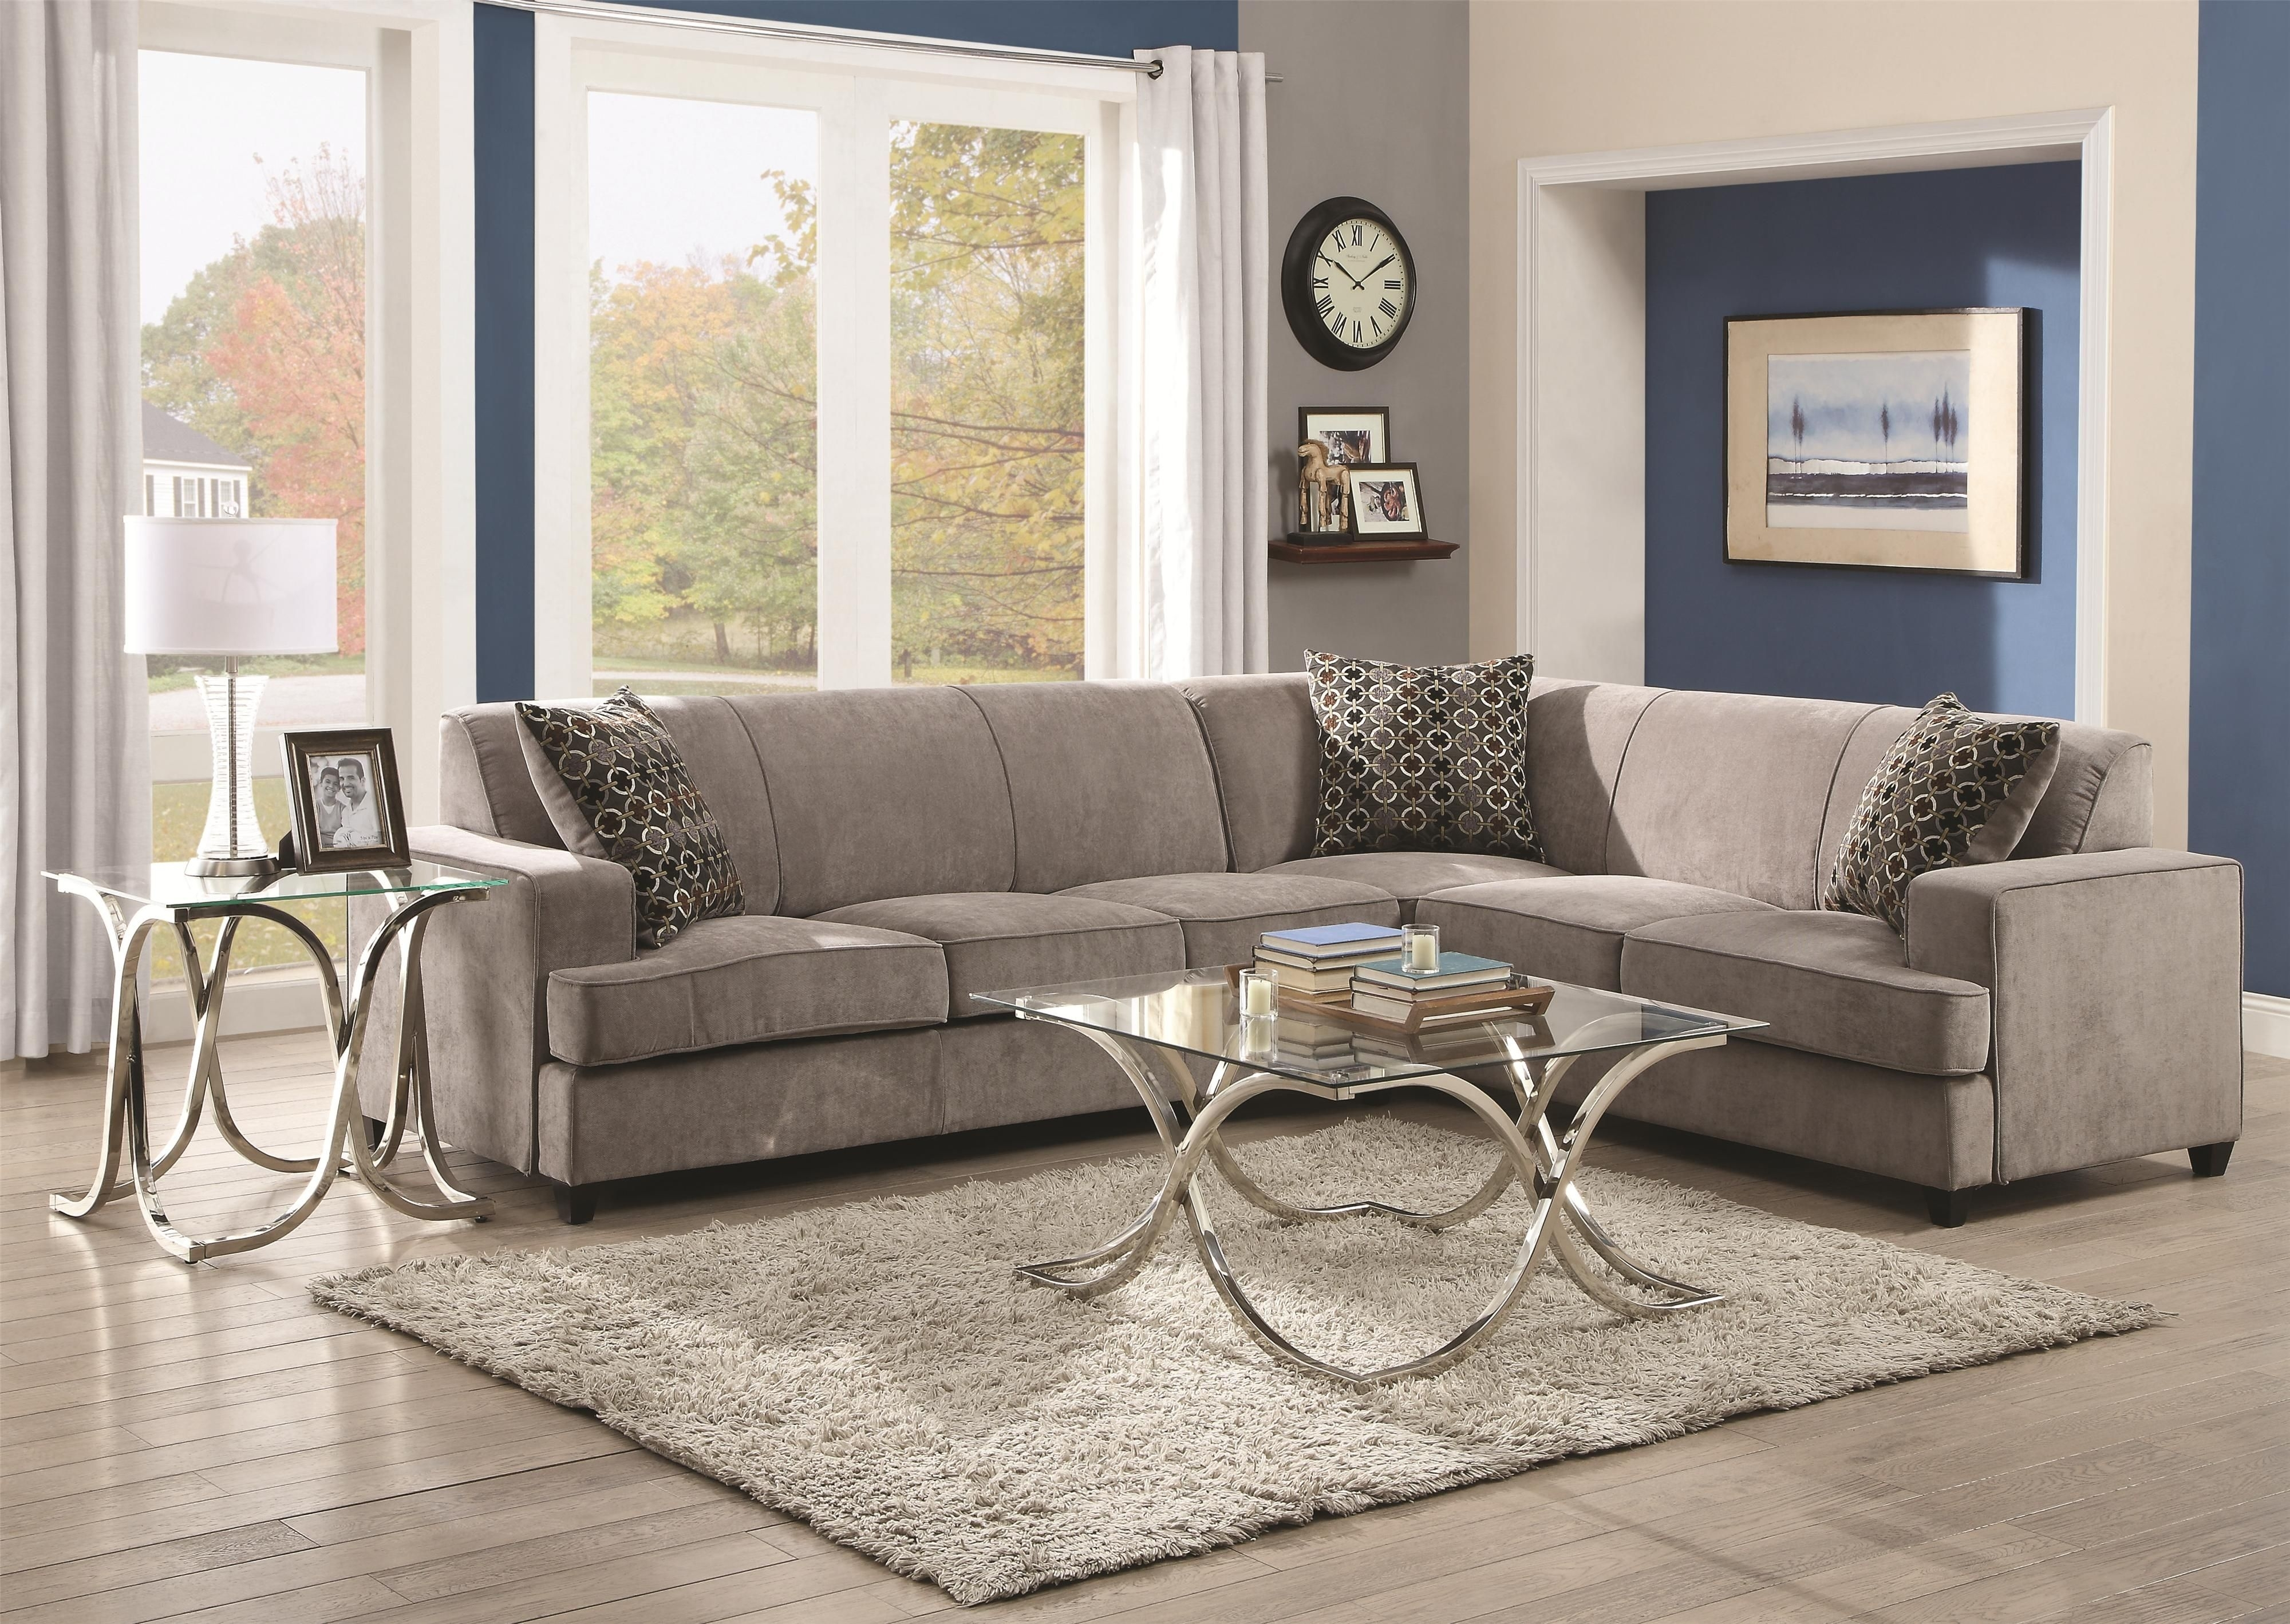 Tess Sectional Sofa For Cornerscoaster | Coasters, Corner And pertaining to Ventura County Sectional Sofas (Image 9 of 10)